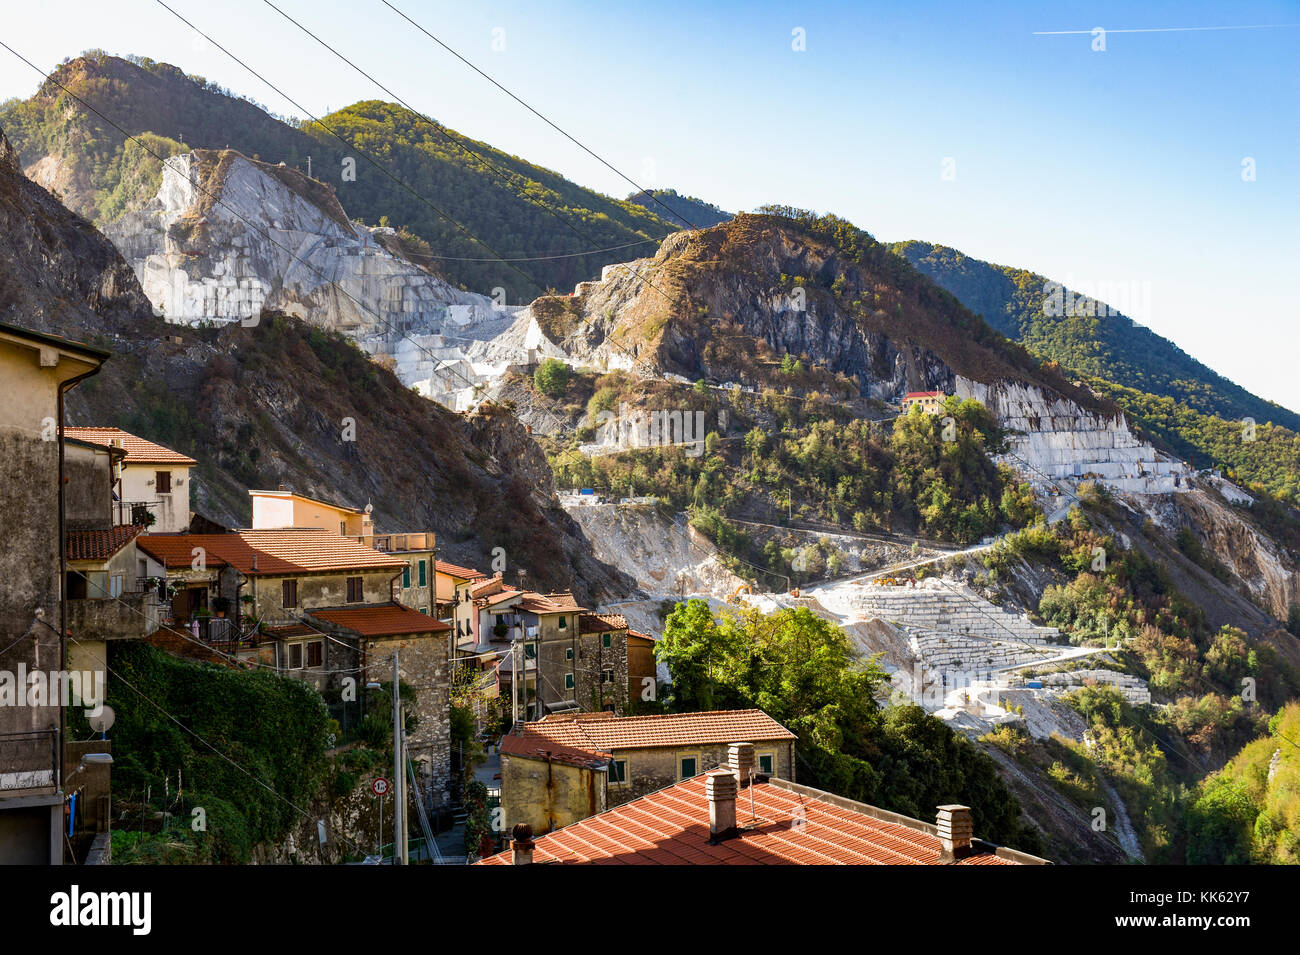 Europe. Italy. Tuscany. Carrara. The white marble quarries around the village of Colonnata - Stock Image